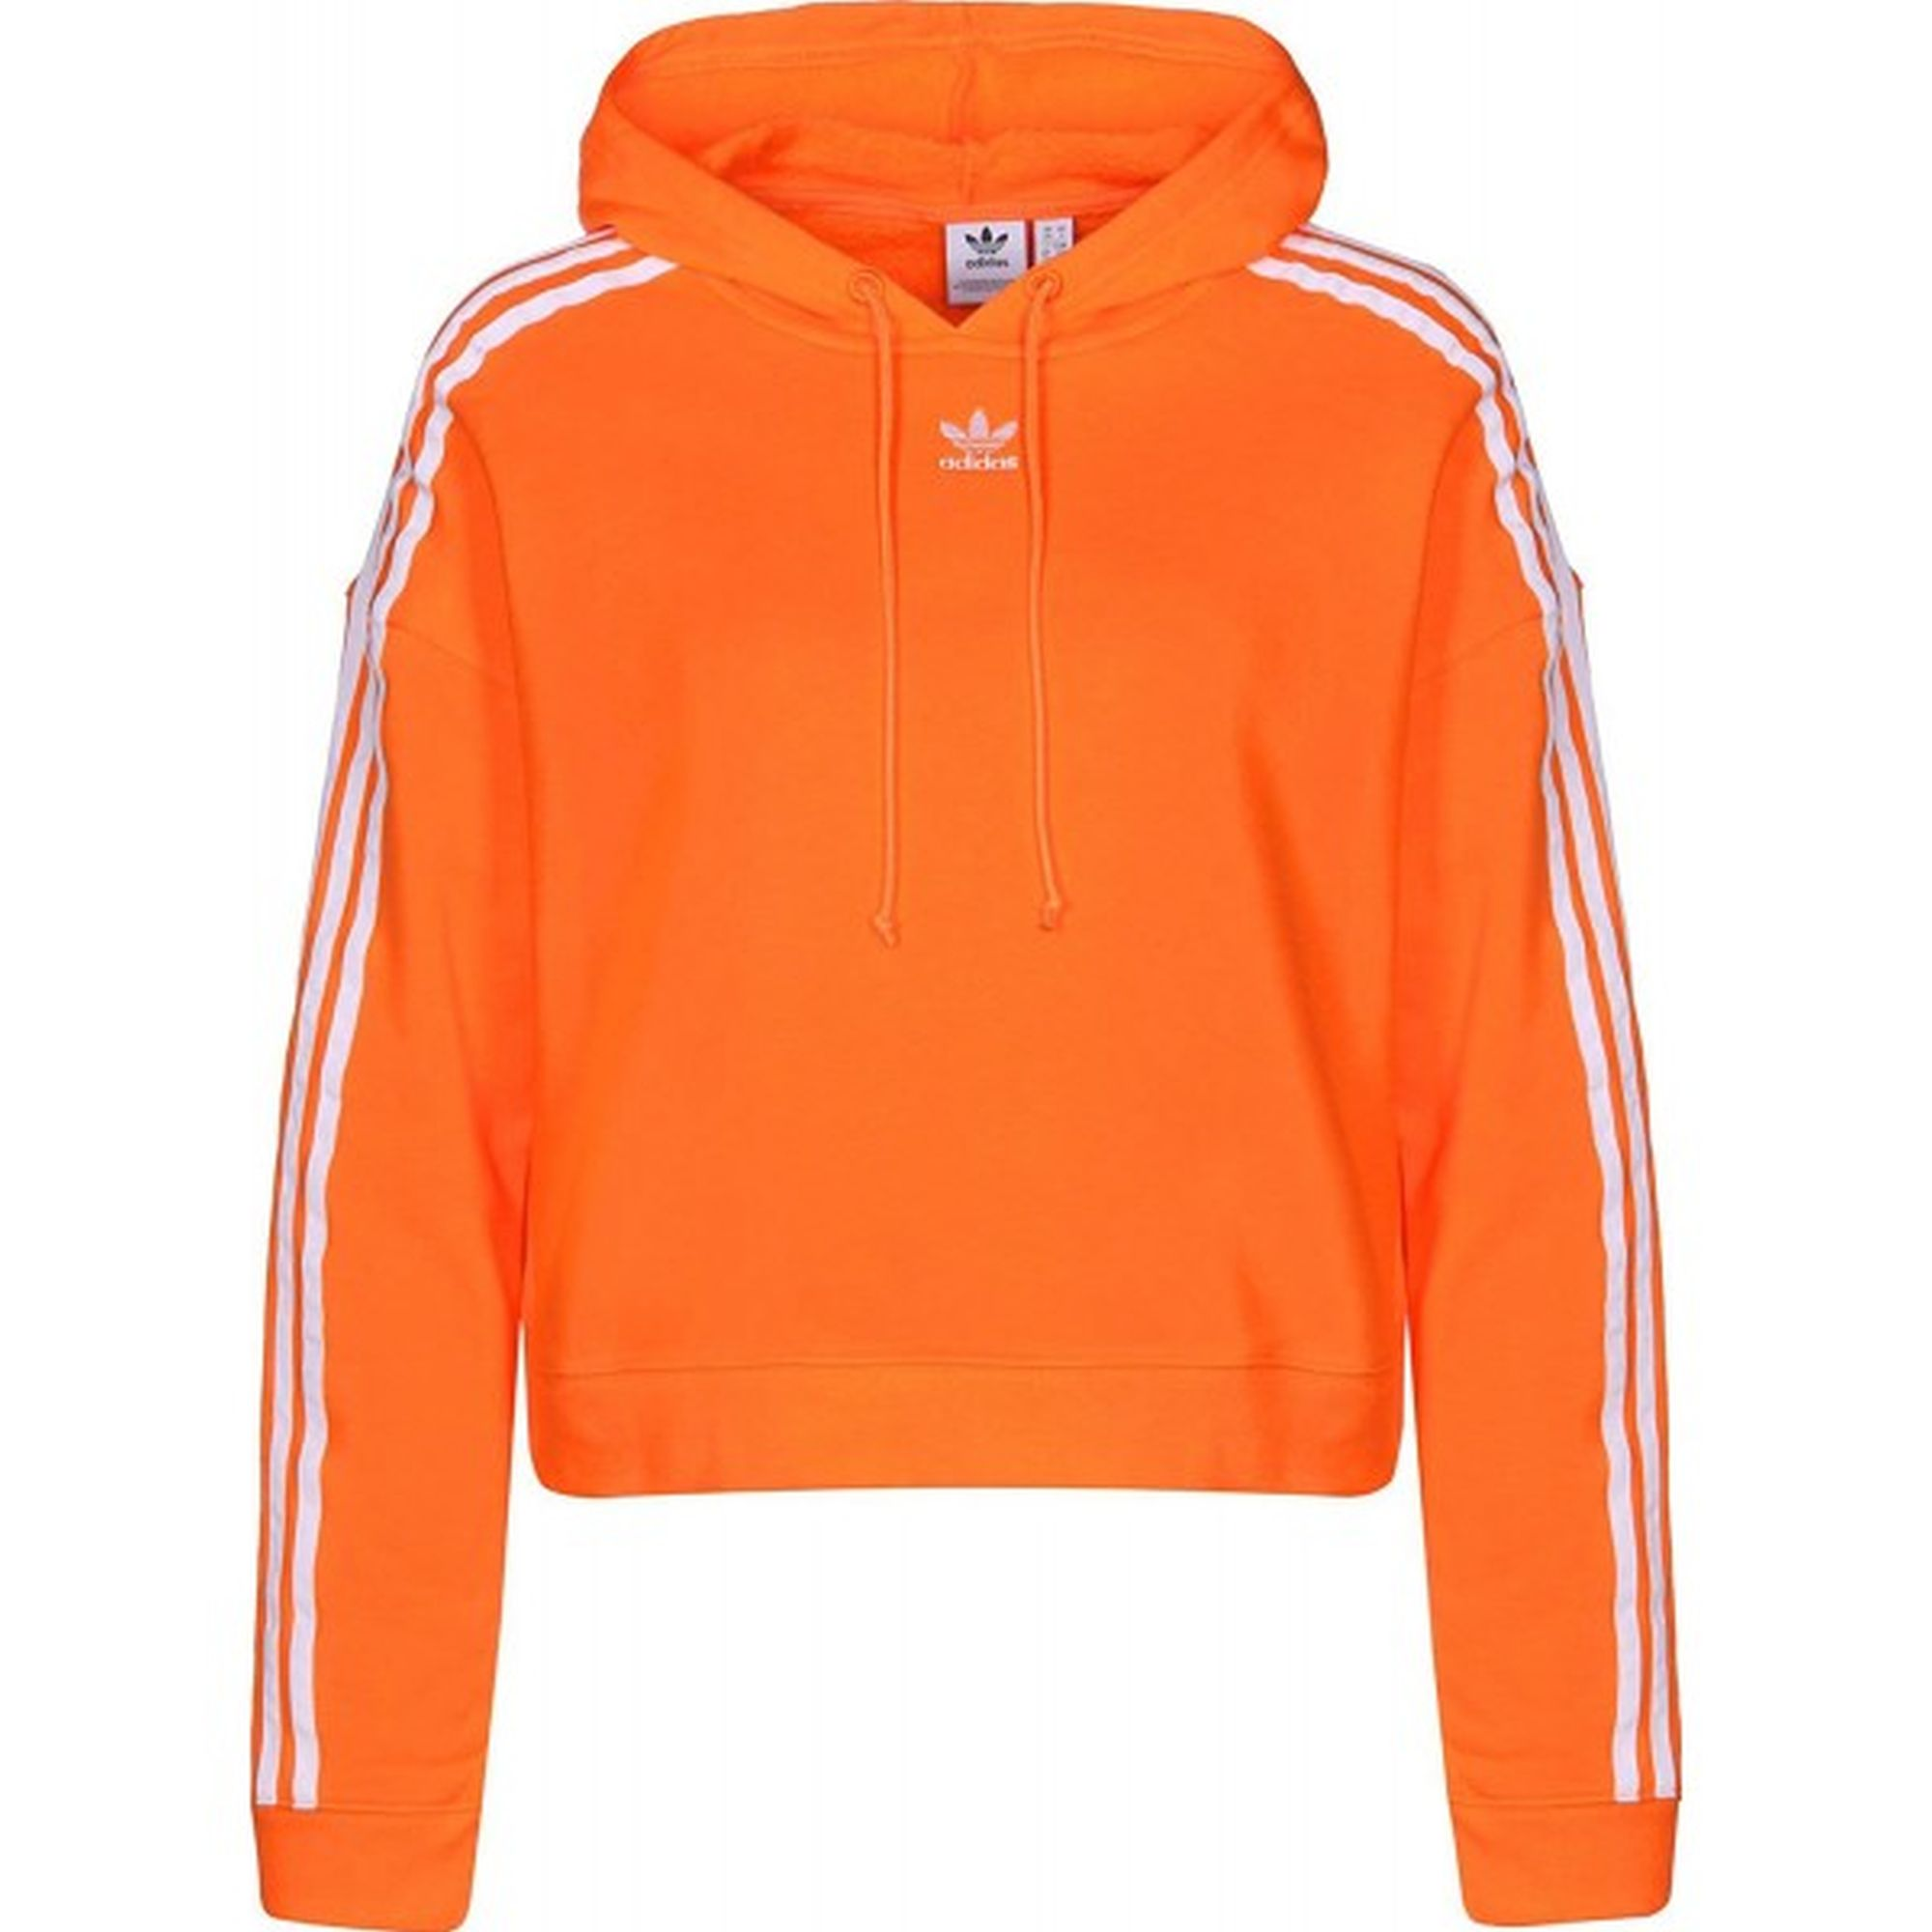 Adidas Cropped Hoodie - Bahia Orange